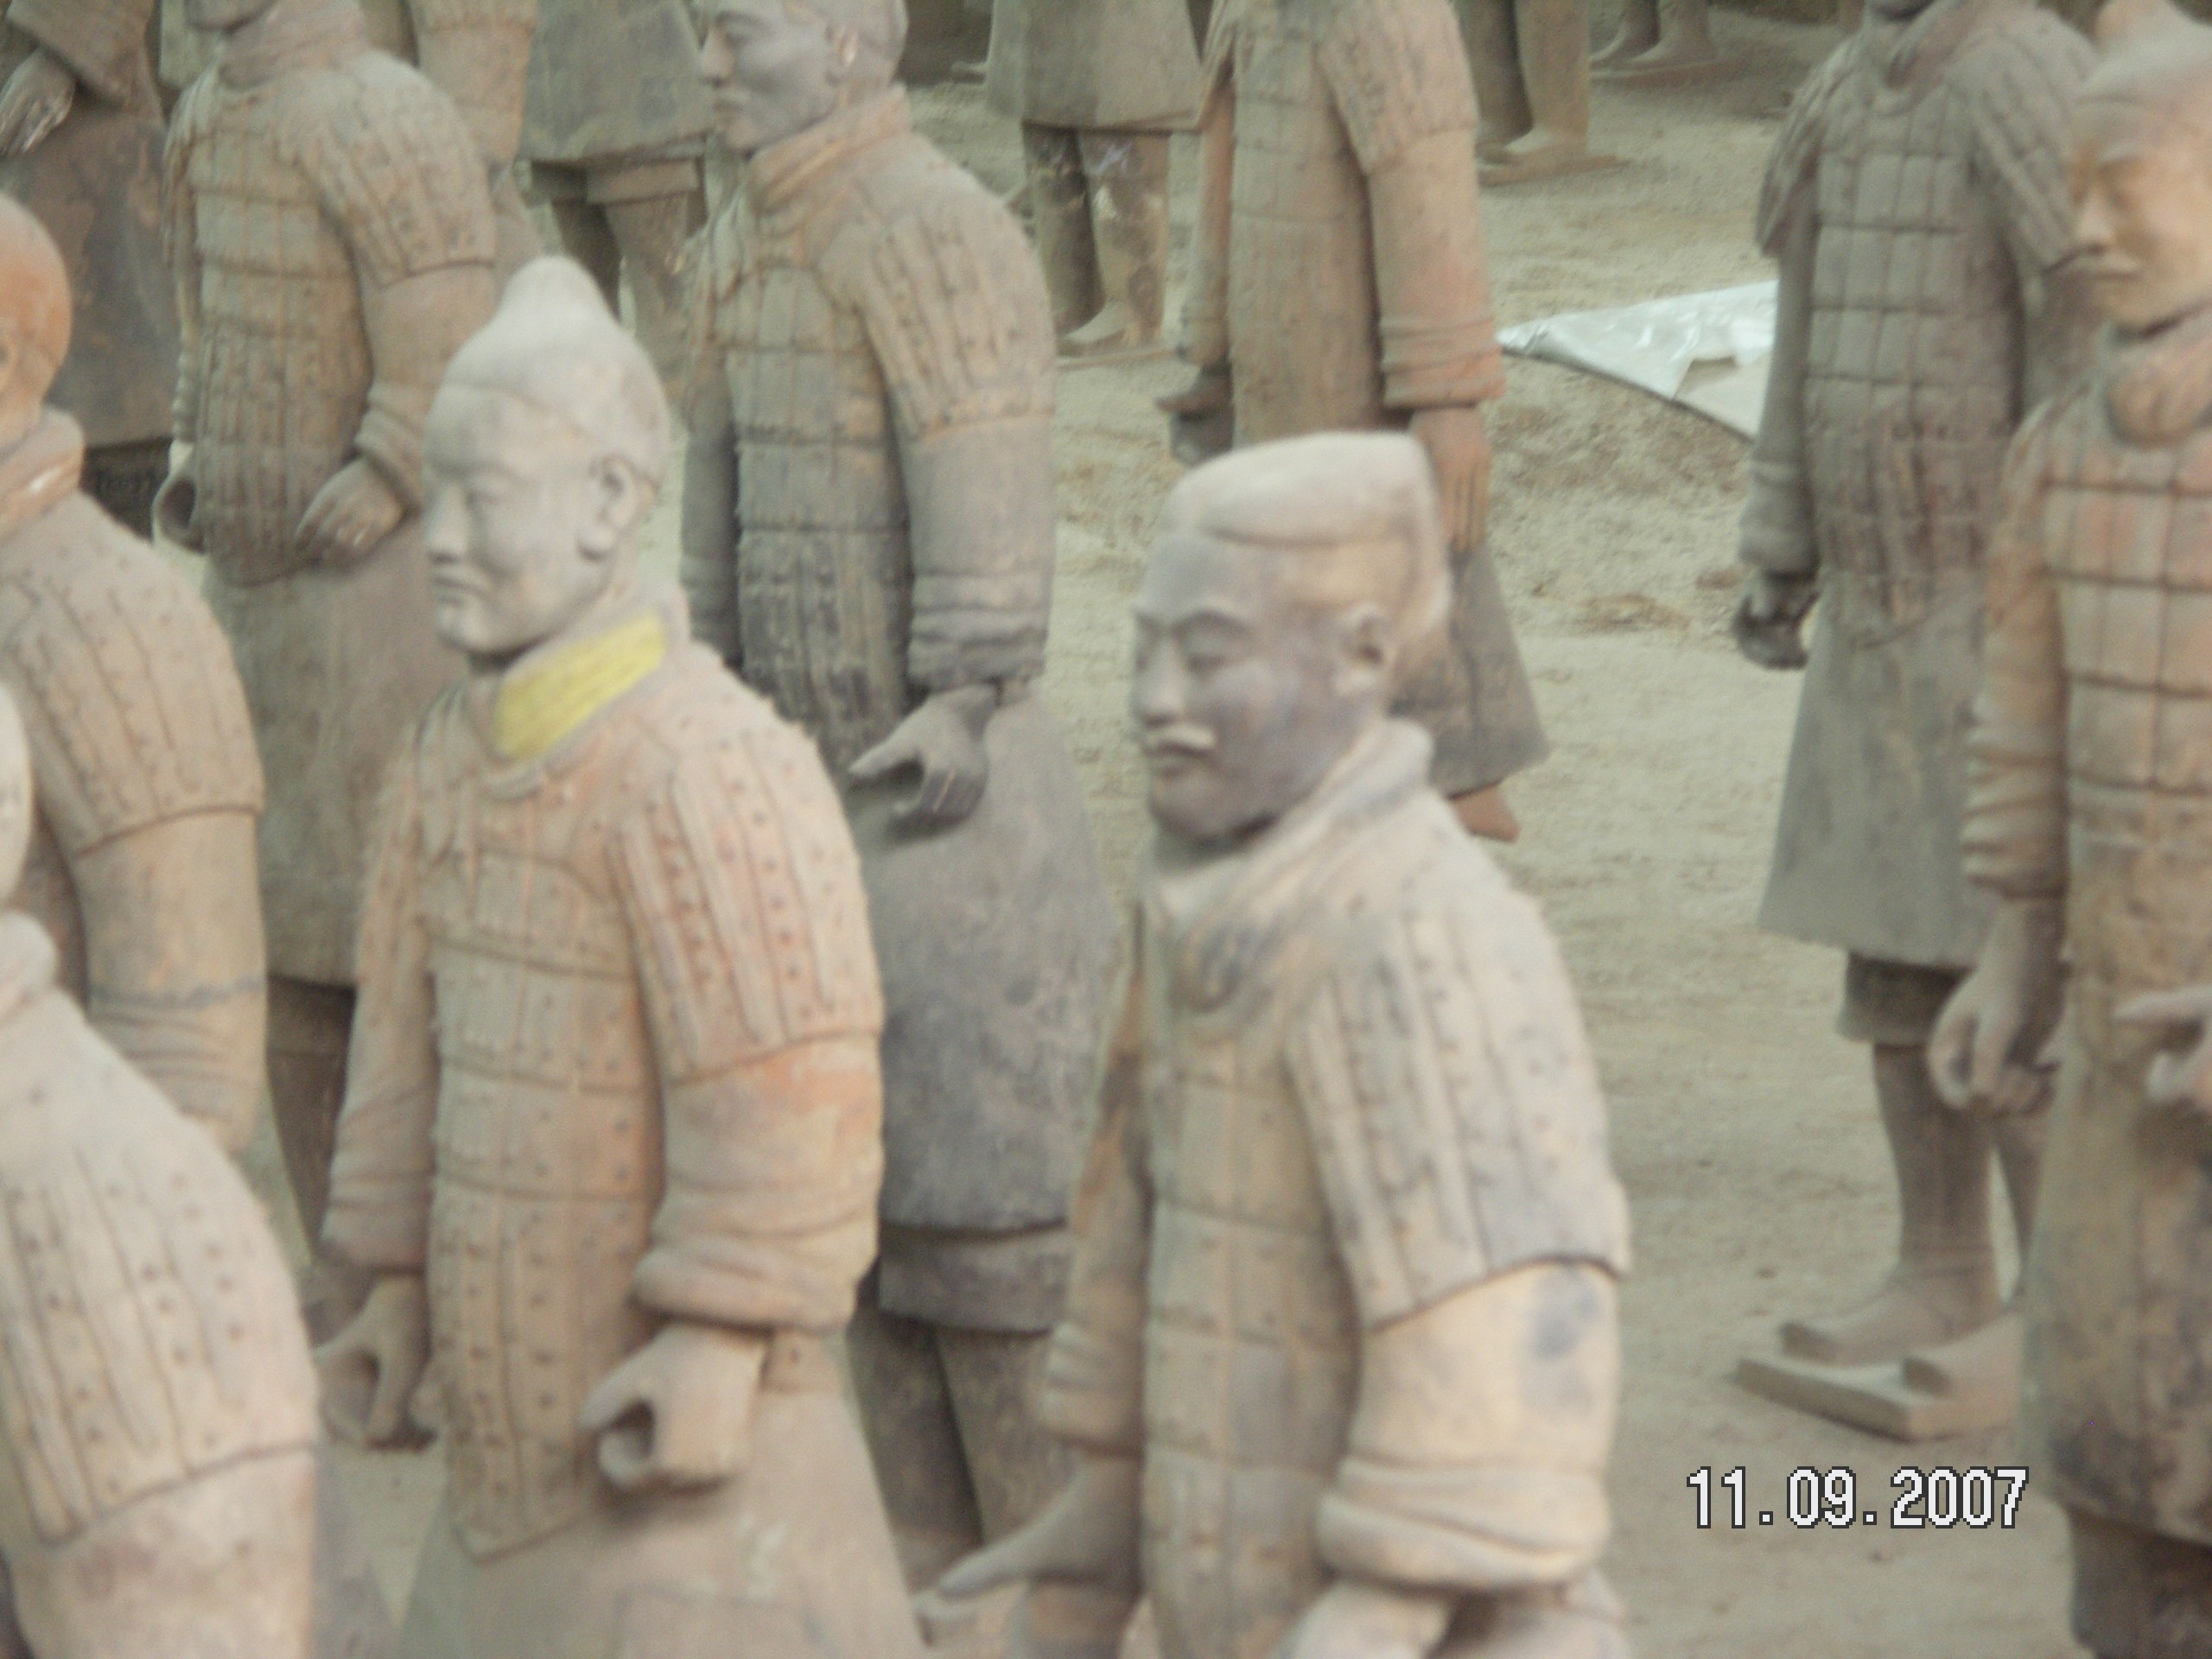 Xian-the Terra Cota soldiers were unbelievable. First of all that they were created-then preserved-found and now being preserved again! It is interesting that the pieces were once colorful. The exposure to the air destroys the color, so in our efforts to recover and preserve them we have managed to lose some of the original beauty. However, it is still a spectacular site!